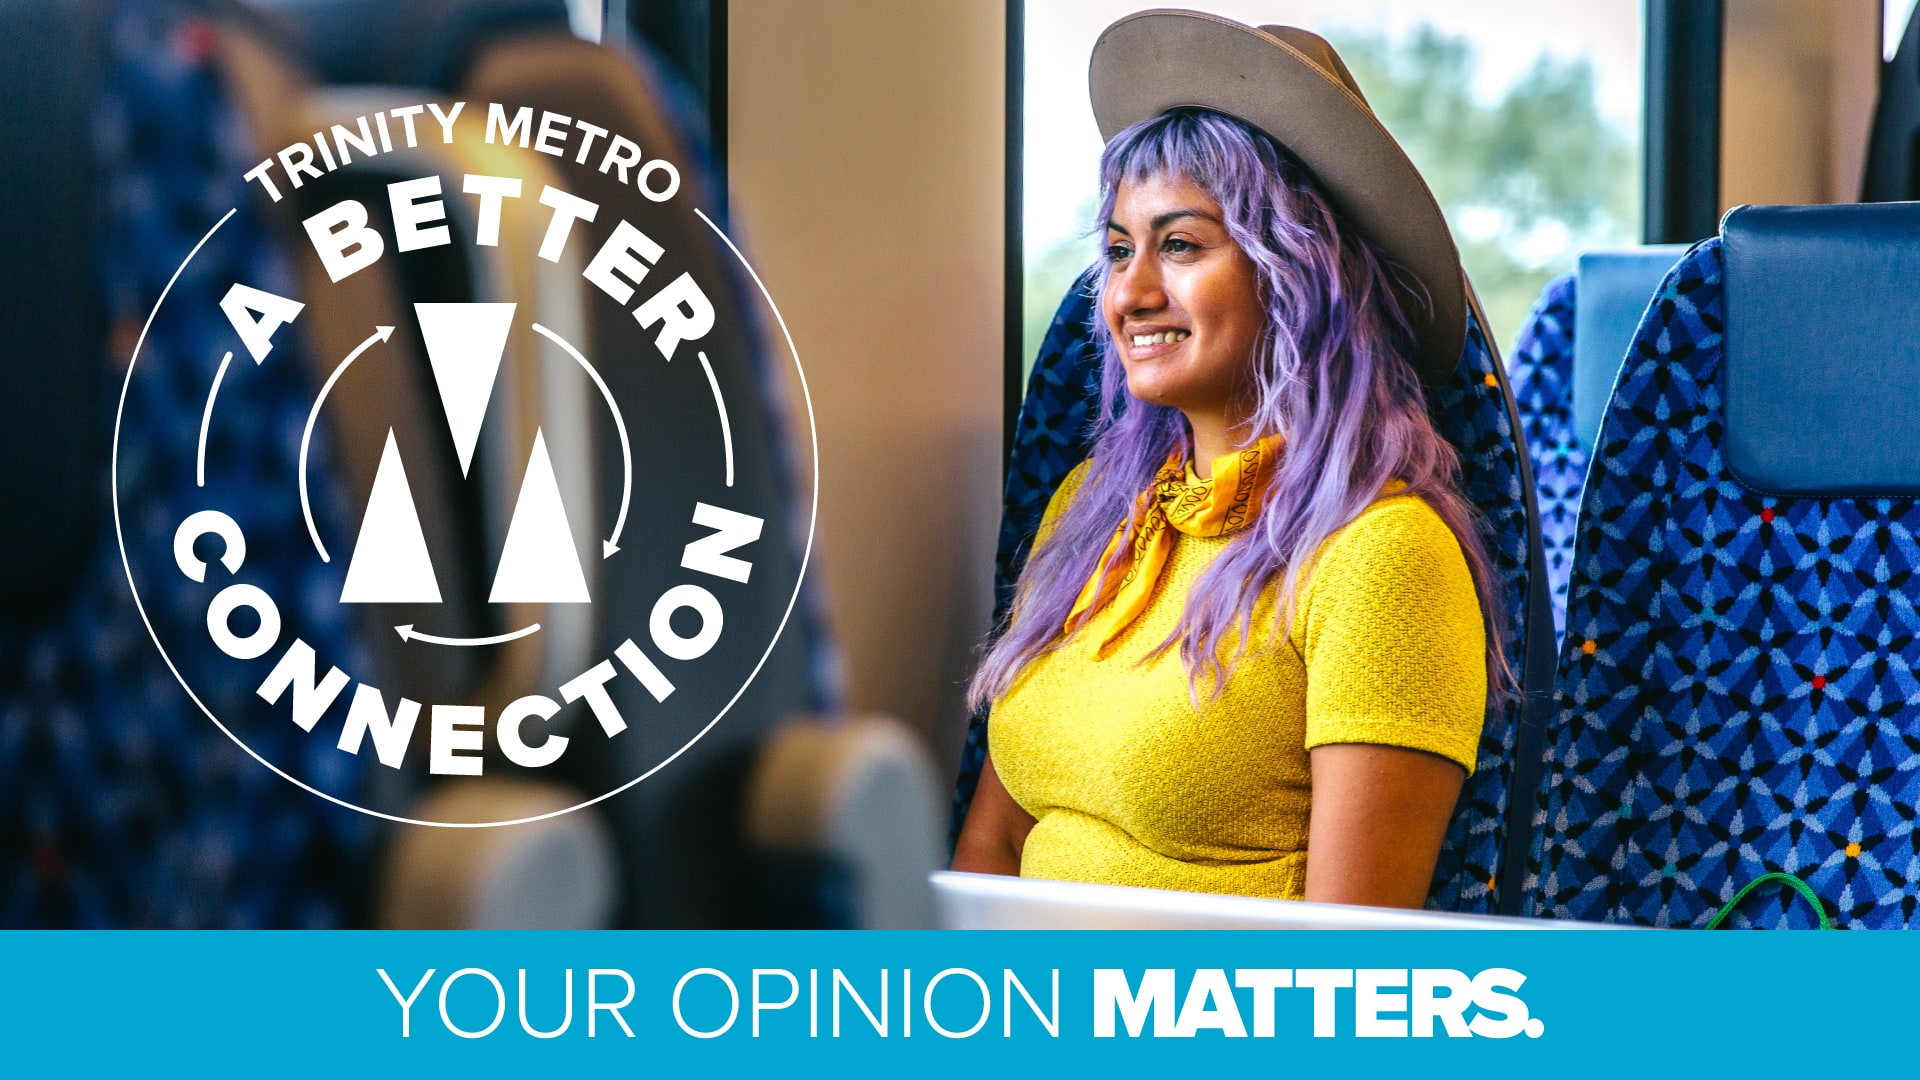 A Better Connection - Your Opinion Matters